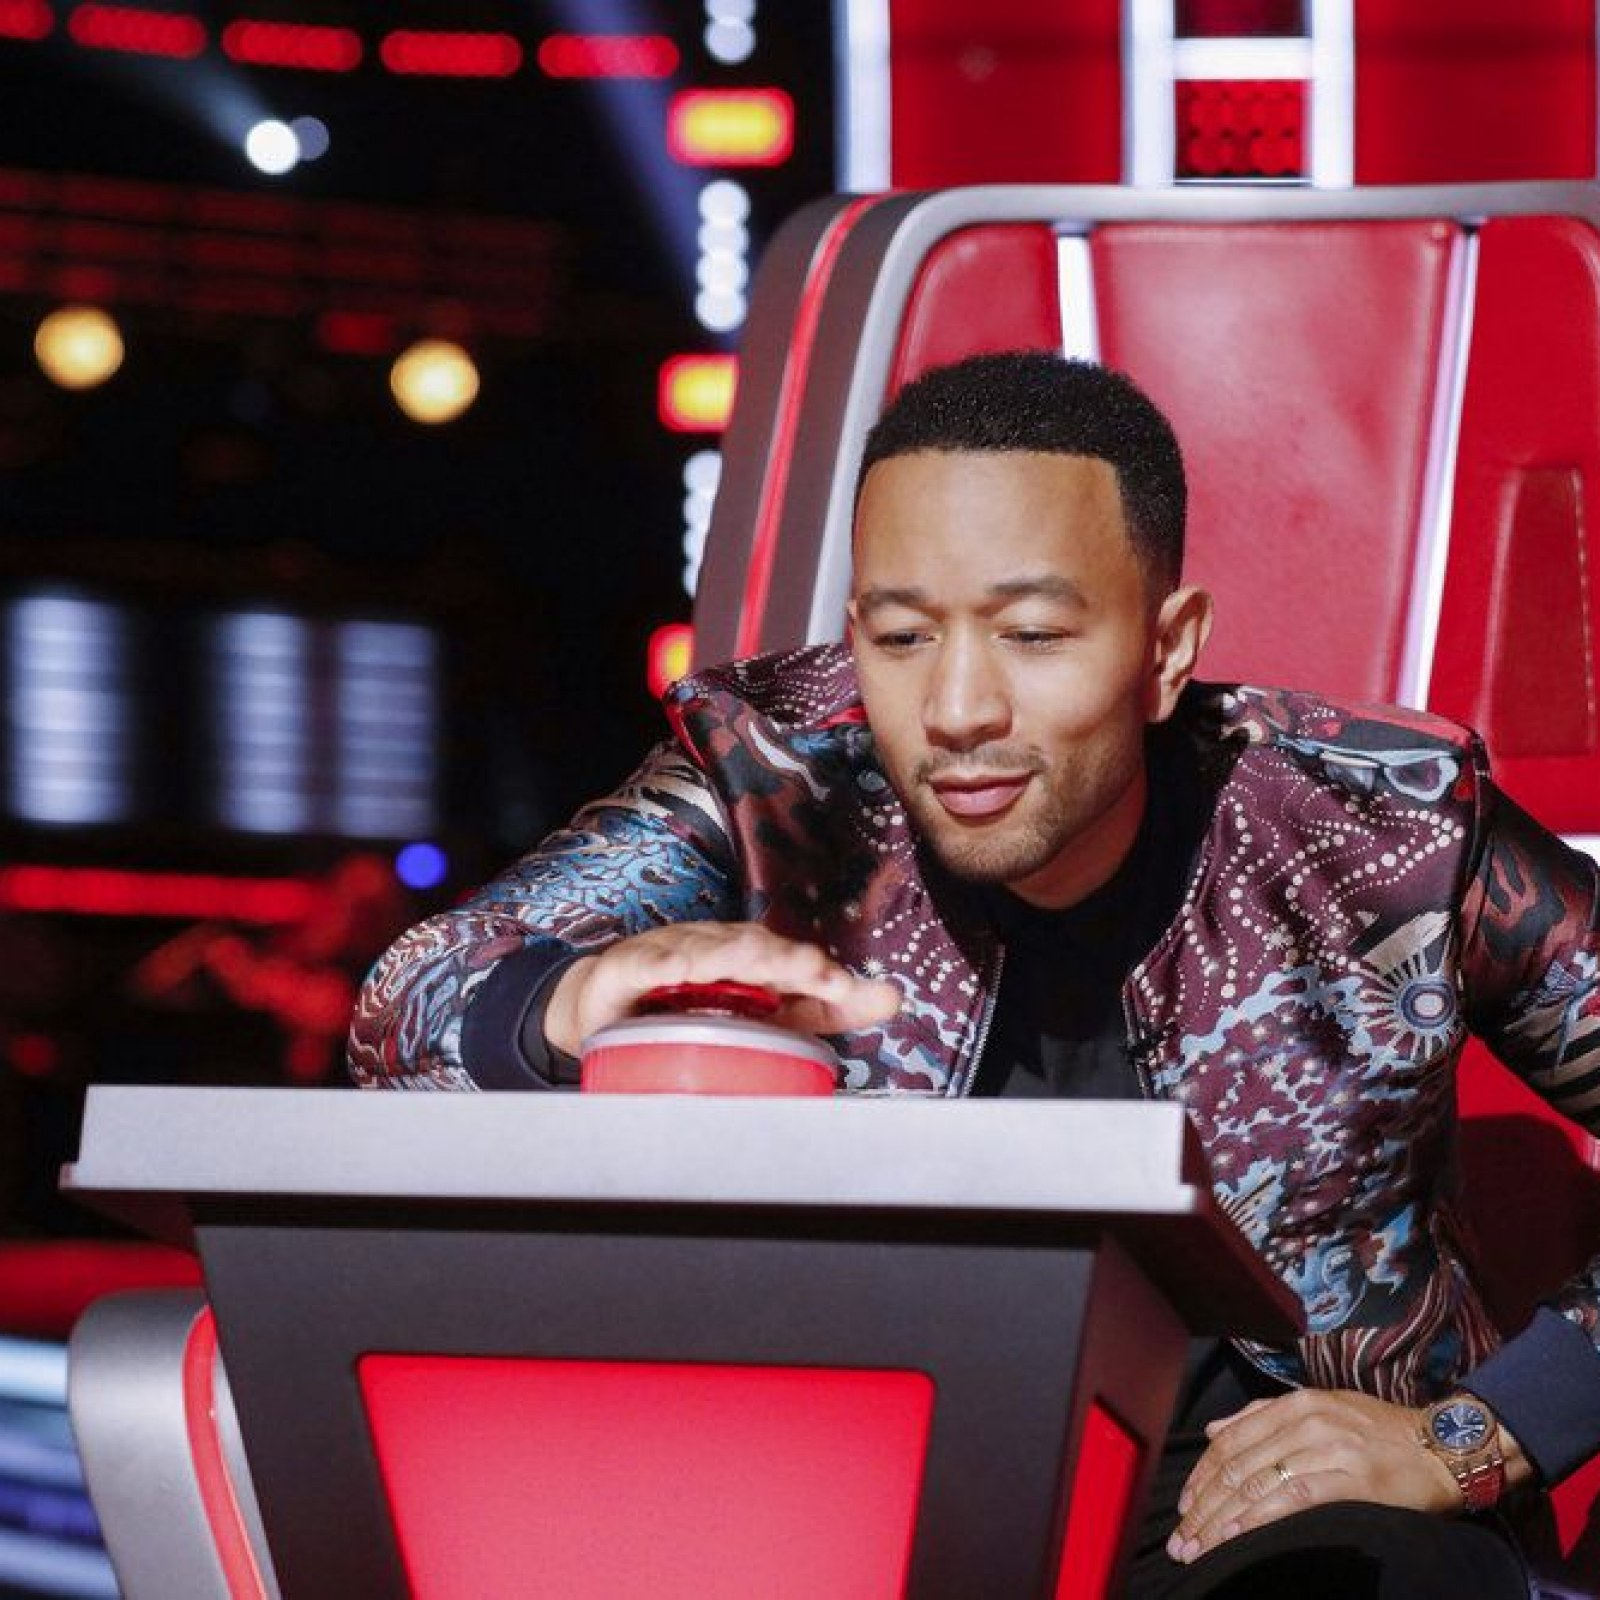 The Voice' 2019 Cross Battles 1 Live Blog Recap: Who Will Be